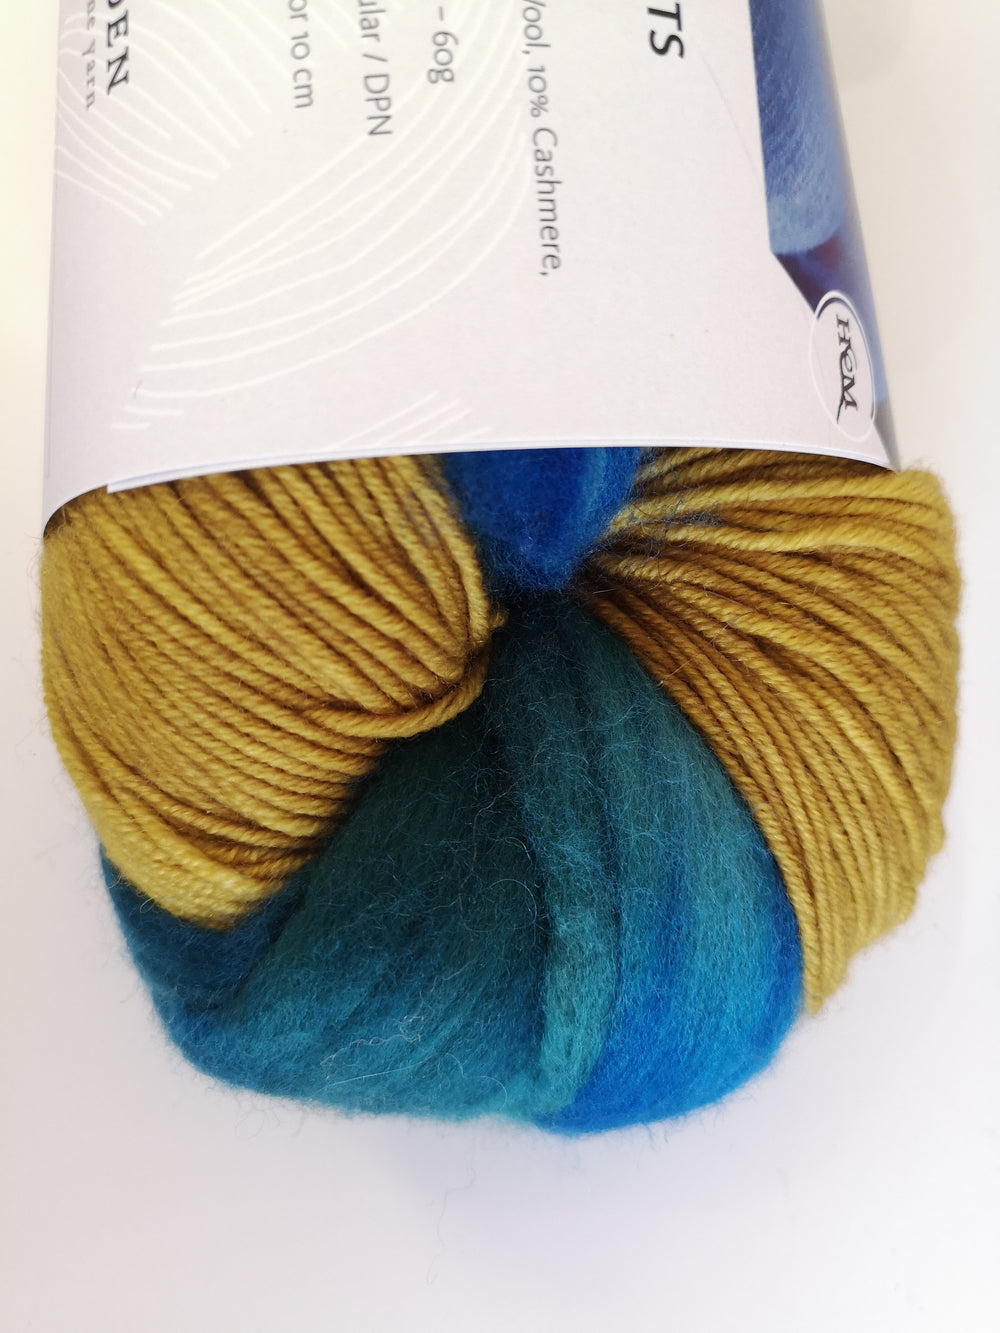 Minegold (Green/Blue Roving)